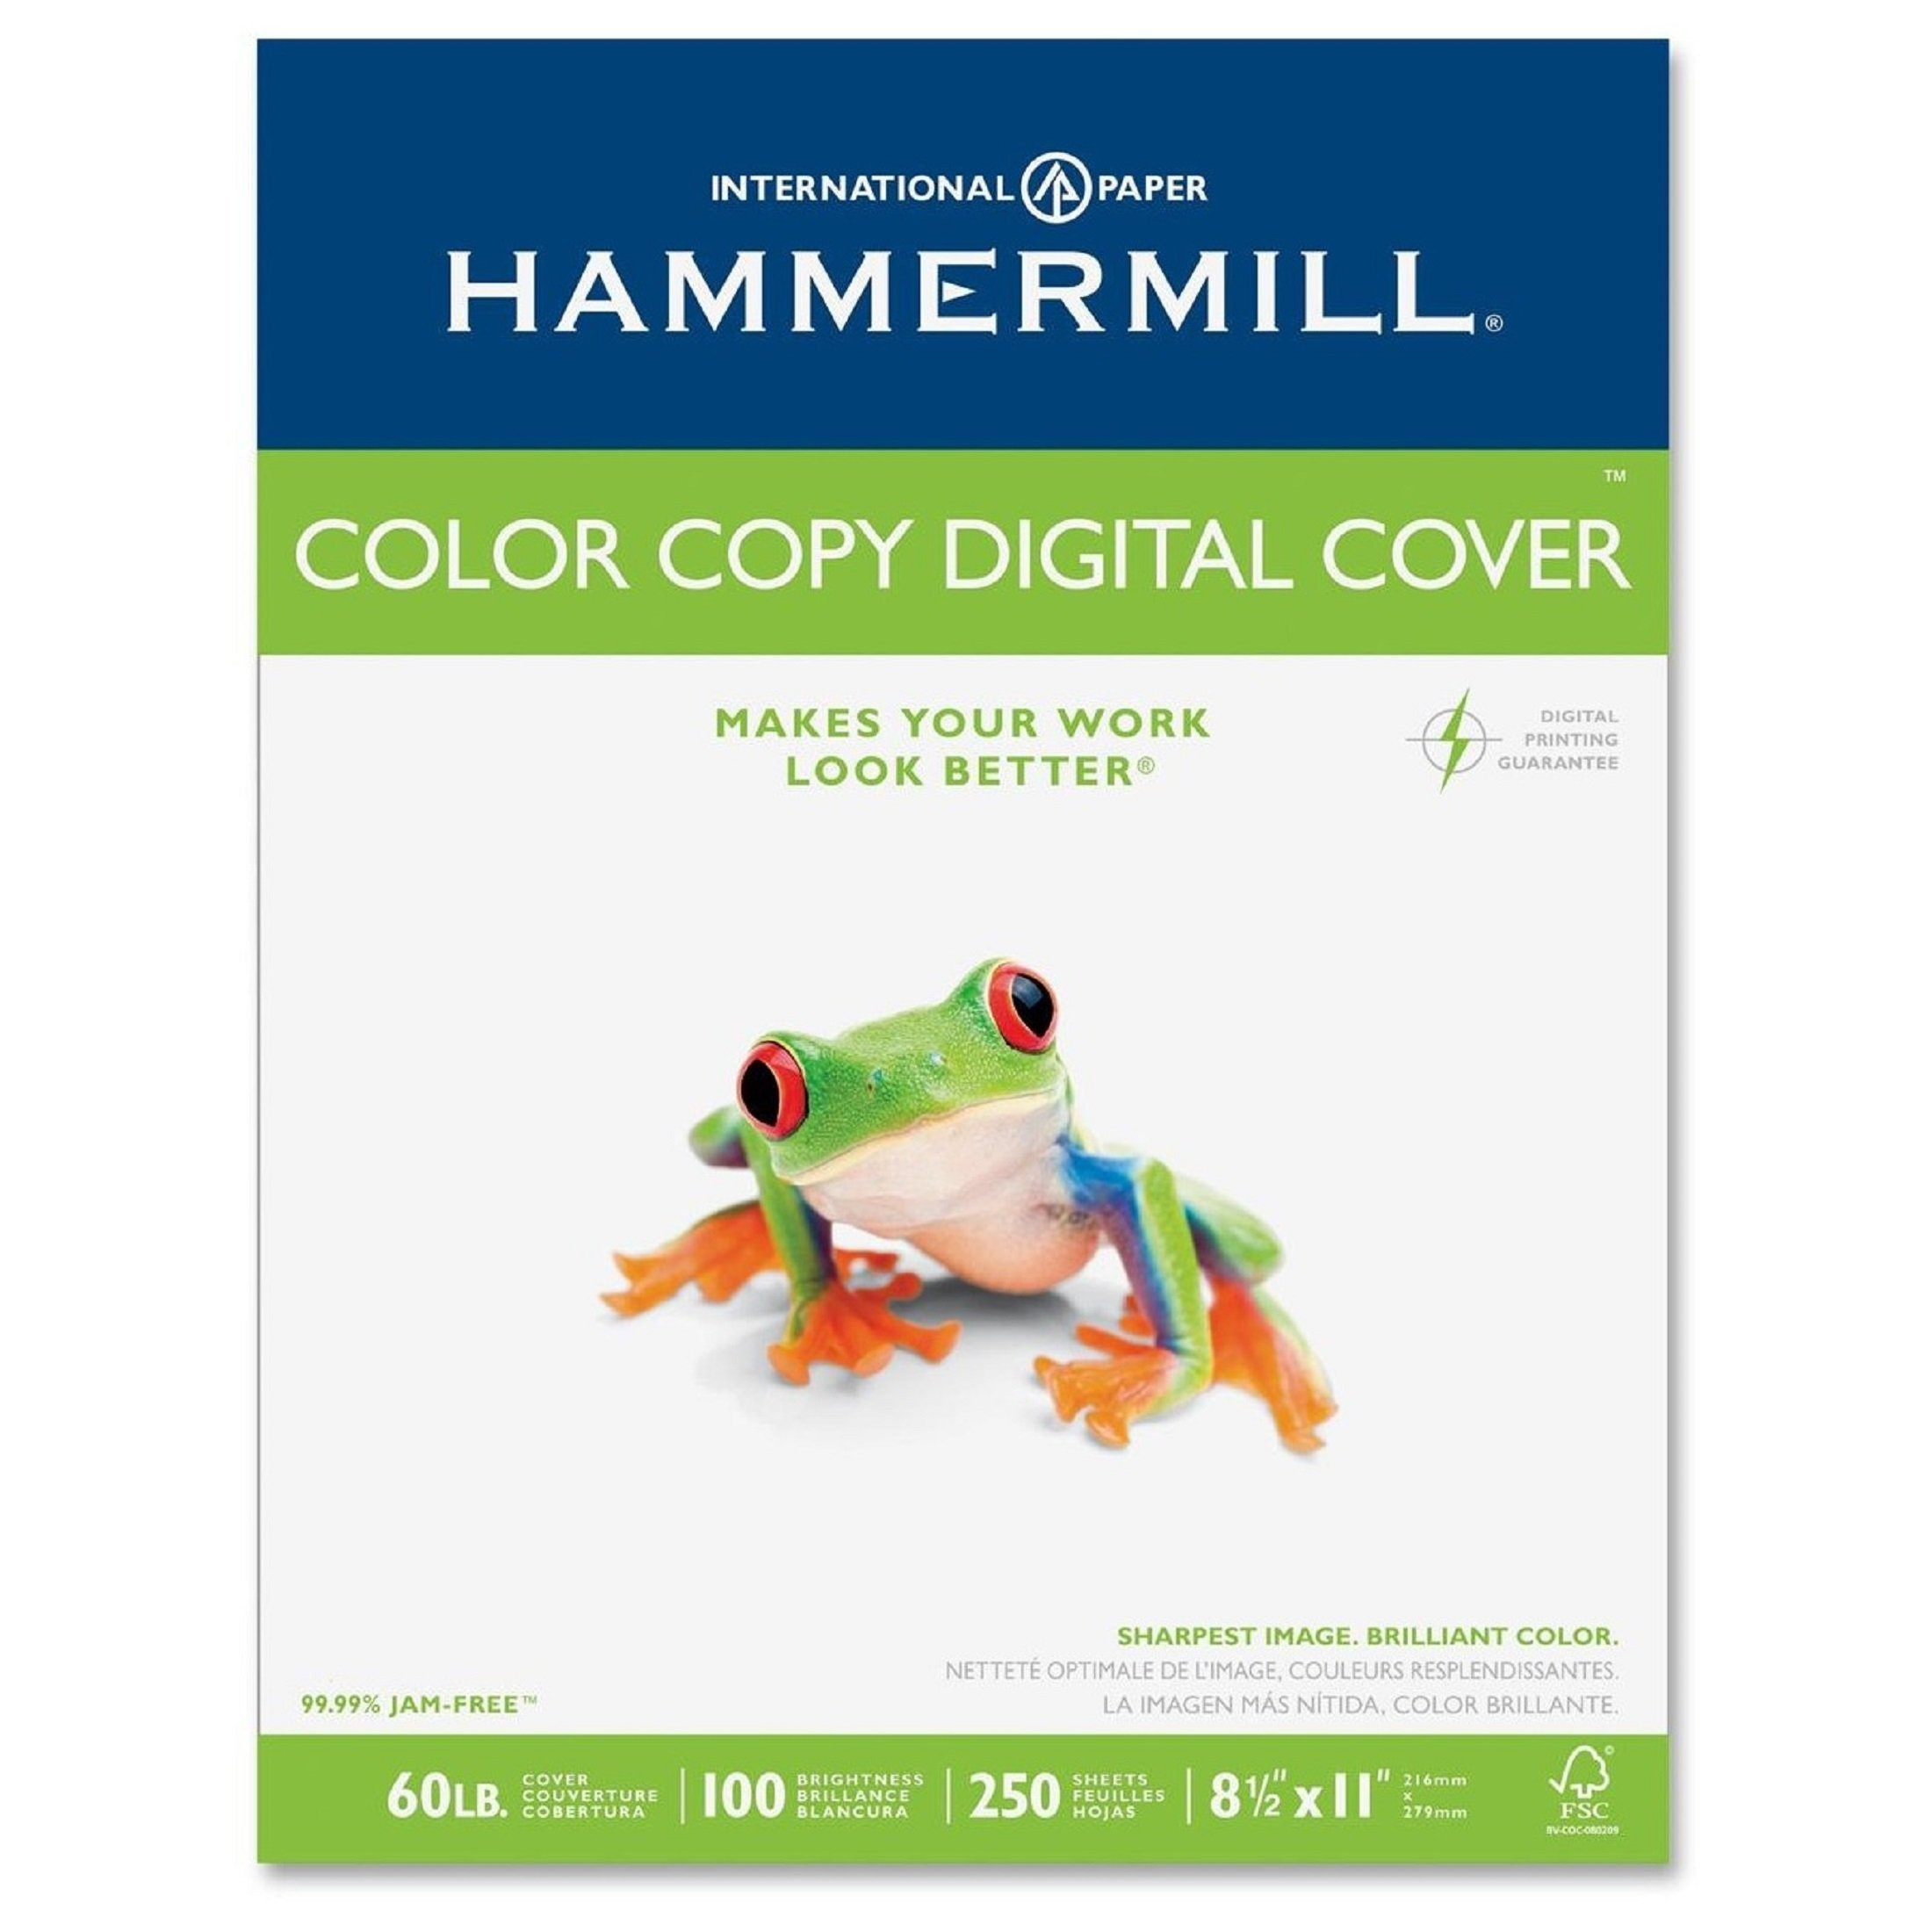 Hammermill Paper, Color Copy Digital Cover, 60 lbs., 8.5 x 11, 100 Bright, 2,500 Sheets / 10 Pack Case (122549C), Made in the USA